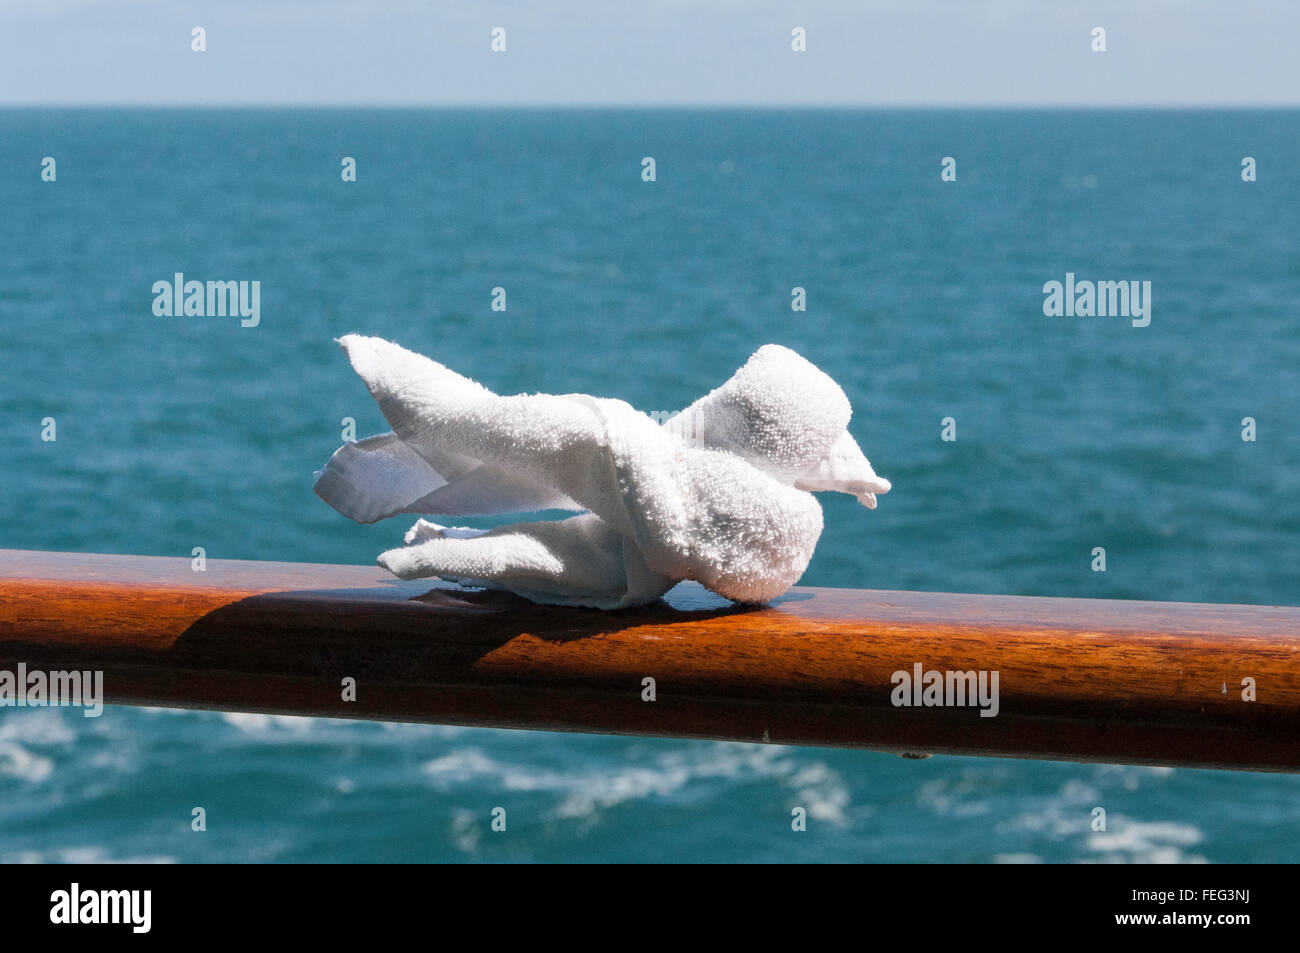 A towel seagull sculpture on ships railling, Royal Caribbean's Brilliance of the Seas cruise ship, North Sea, - Stock Image